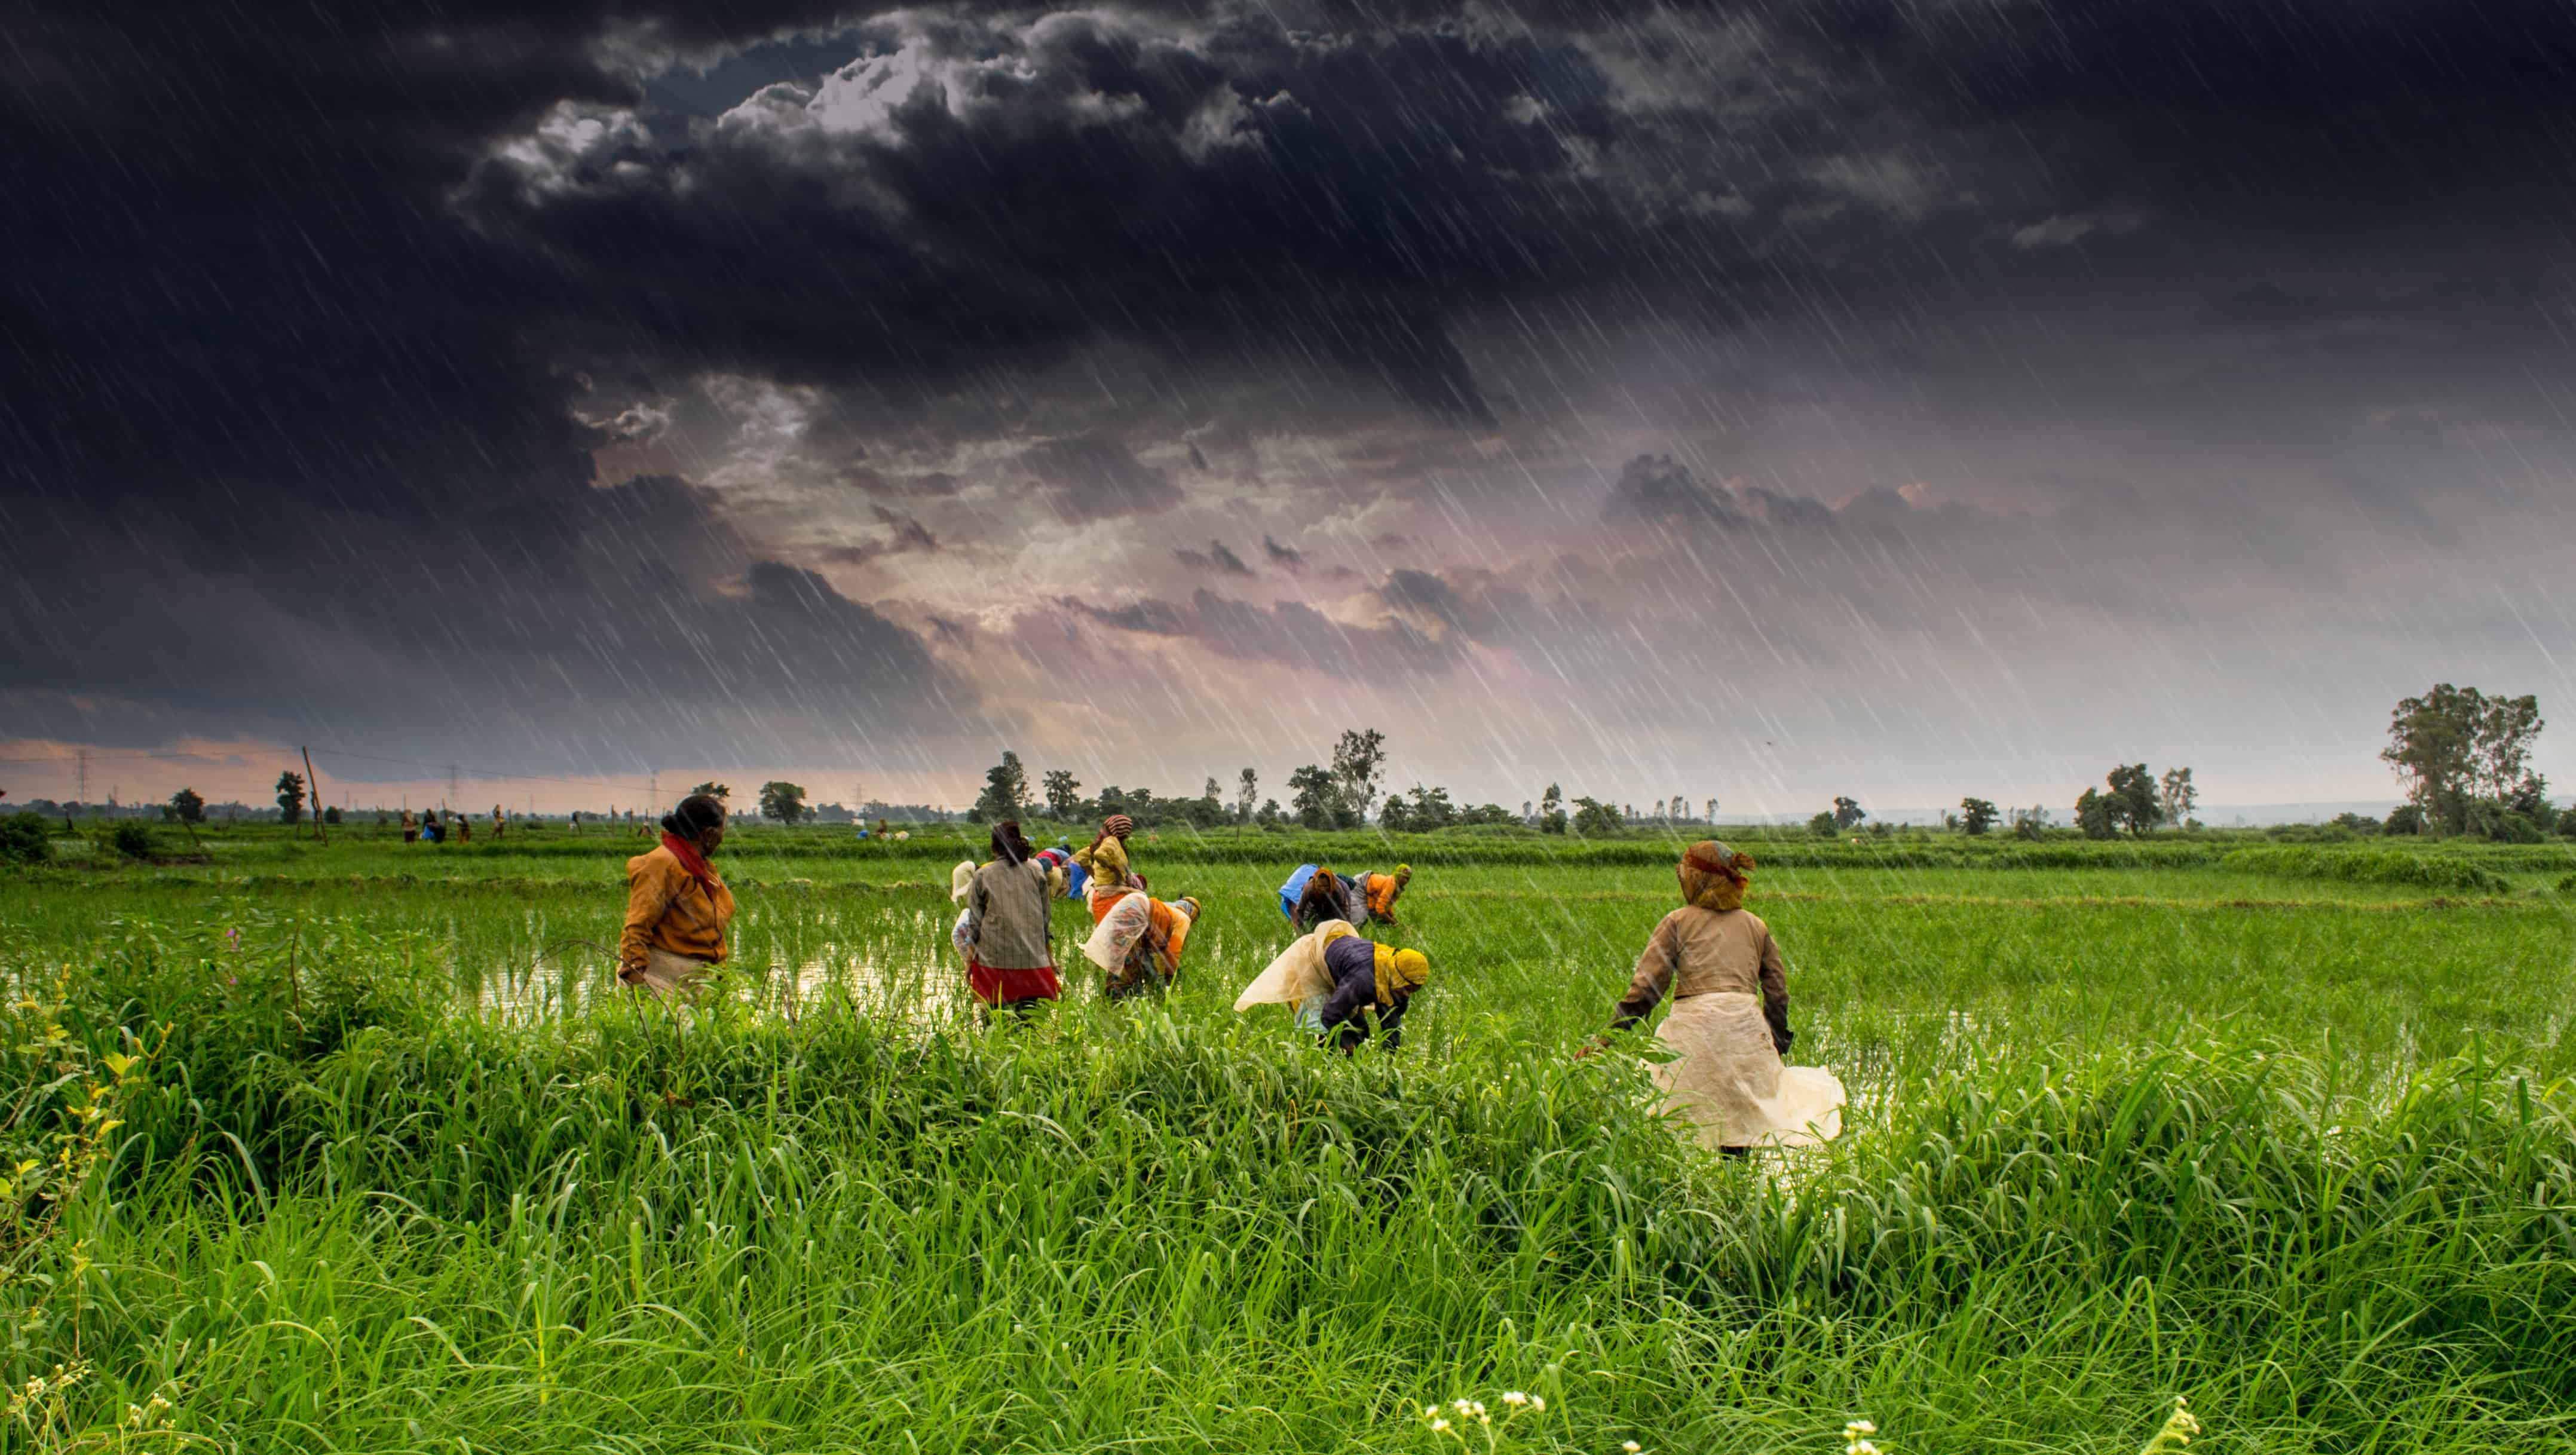 The great Indian Agrarian crisis